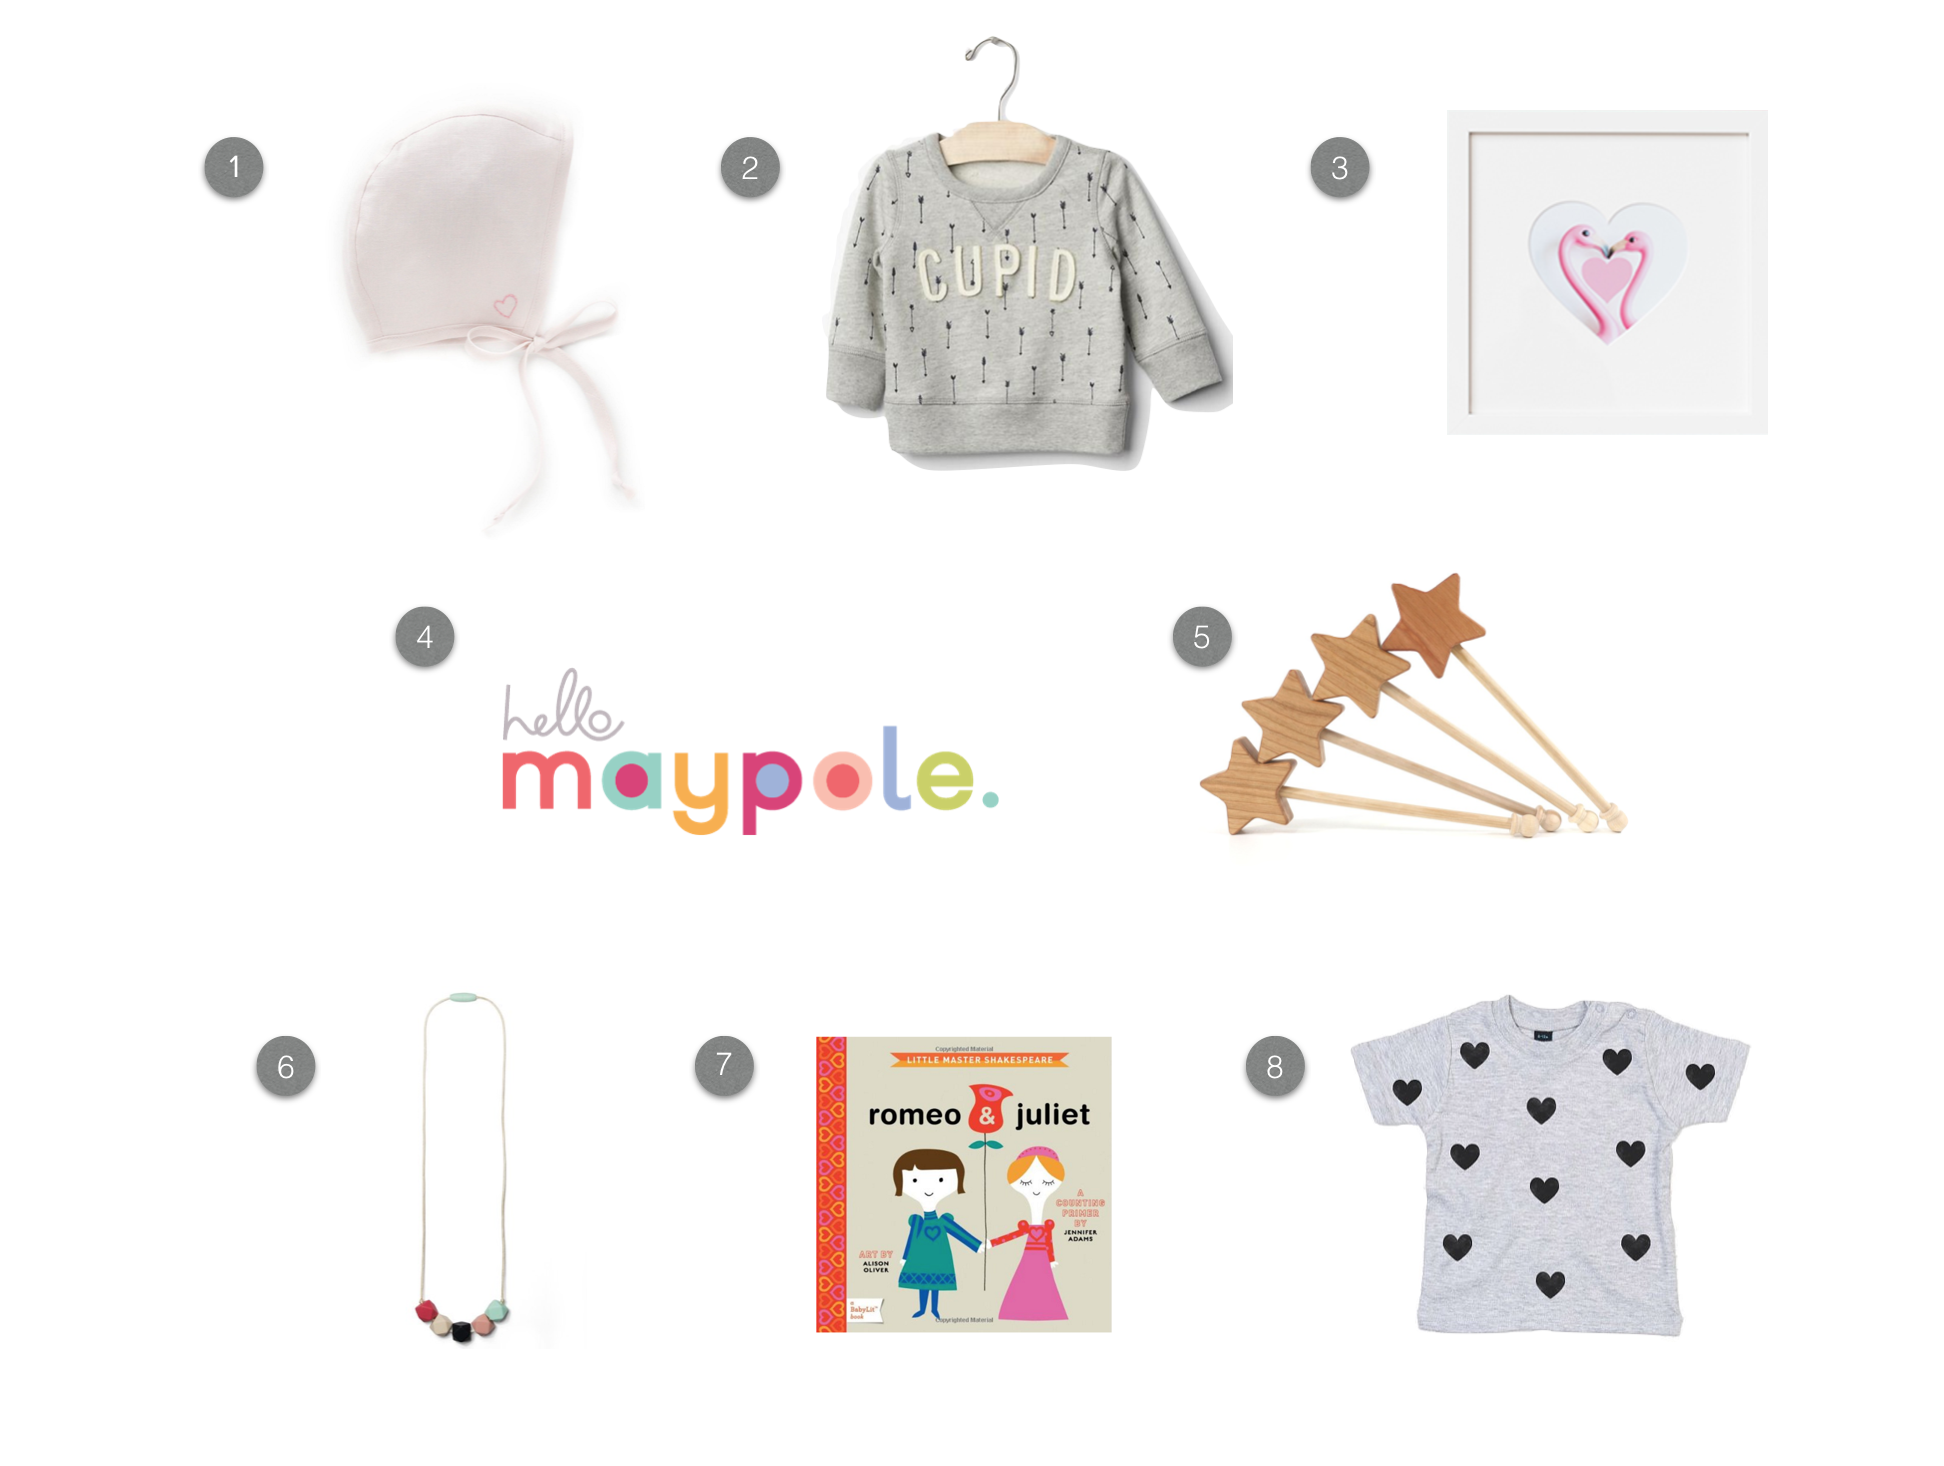 1.  Briar Handmade Pink Heart bonnet  2.  Baby Gap Cupid sweatshirt  3.  Framebridge Heartstagram  4.  Hello Maypole XO felt balls  5.  Bannor Toys wooden star wand  6.  Mama and Little teething necklace  7.  BabyLit Romeo & Juliet  8.  Hola Pequeño heart shirt